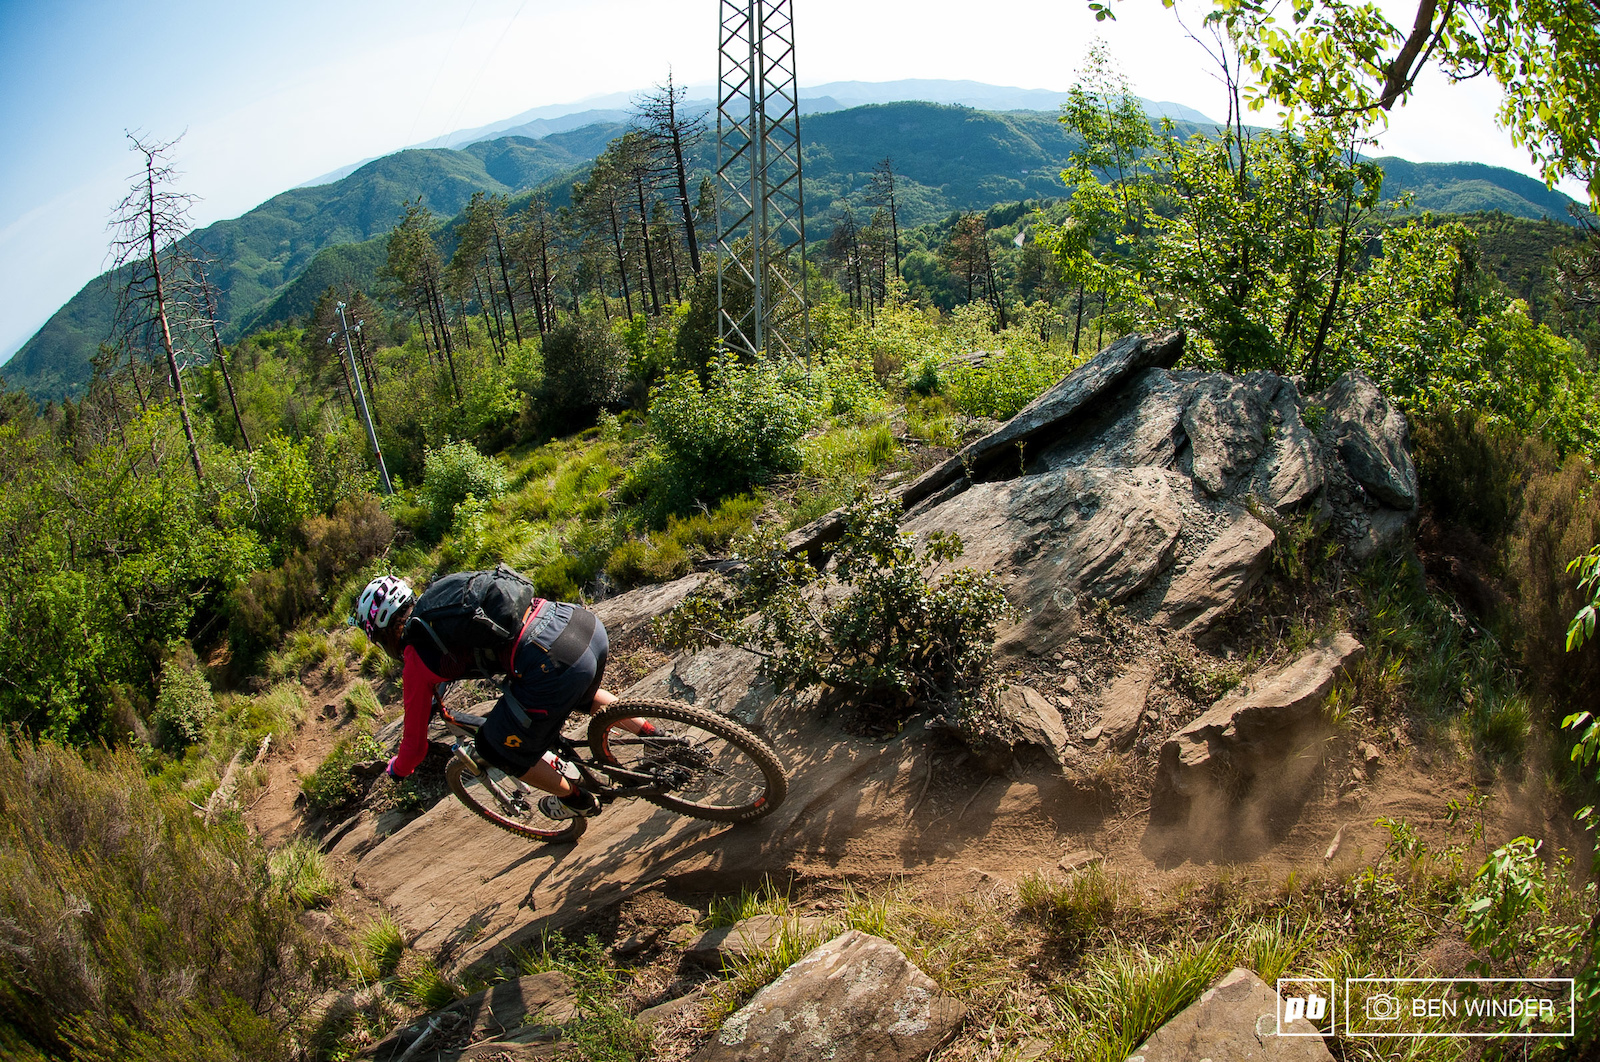 This is a moment when the trail comes out the woodland for a breath of fresh air but it s far from that for the riders descending into a super technical steep rock slab.